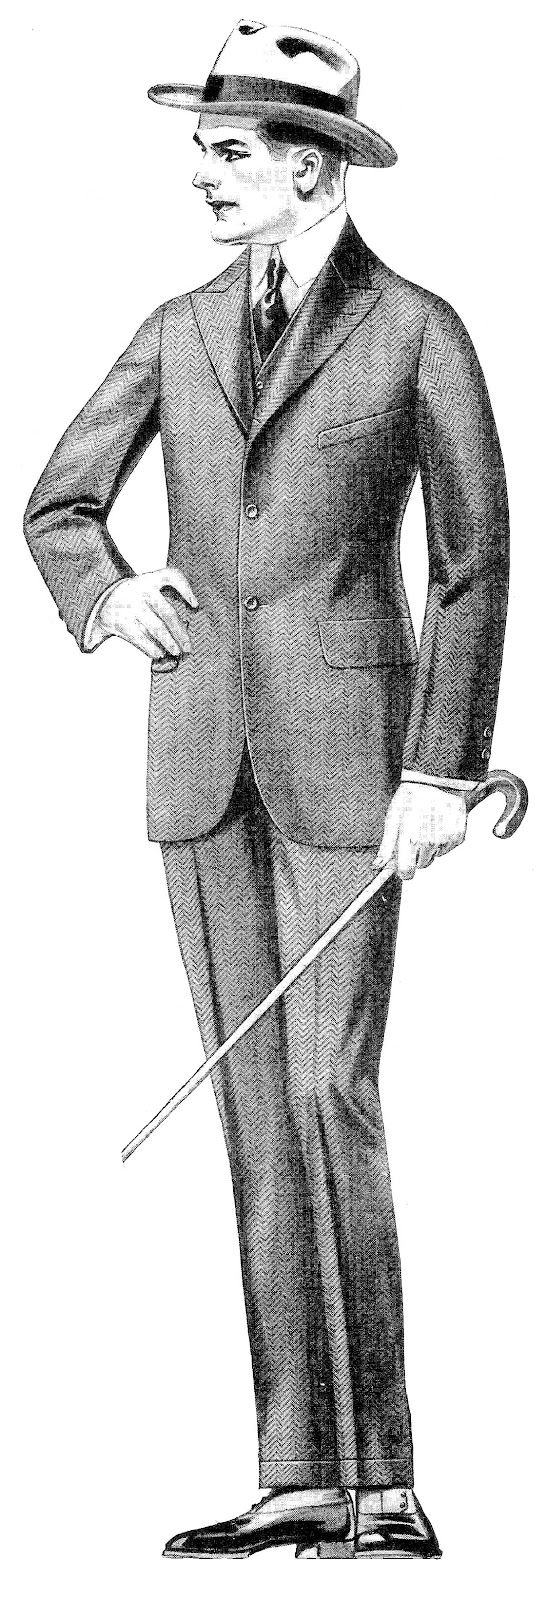 Antique Images: Vintage Men's Fashion Clip Art: 2 Vintage Men's Suits from 1915 Clothes Catalog